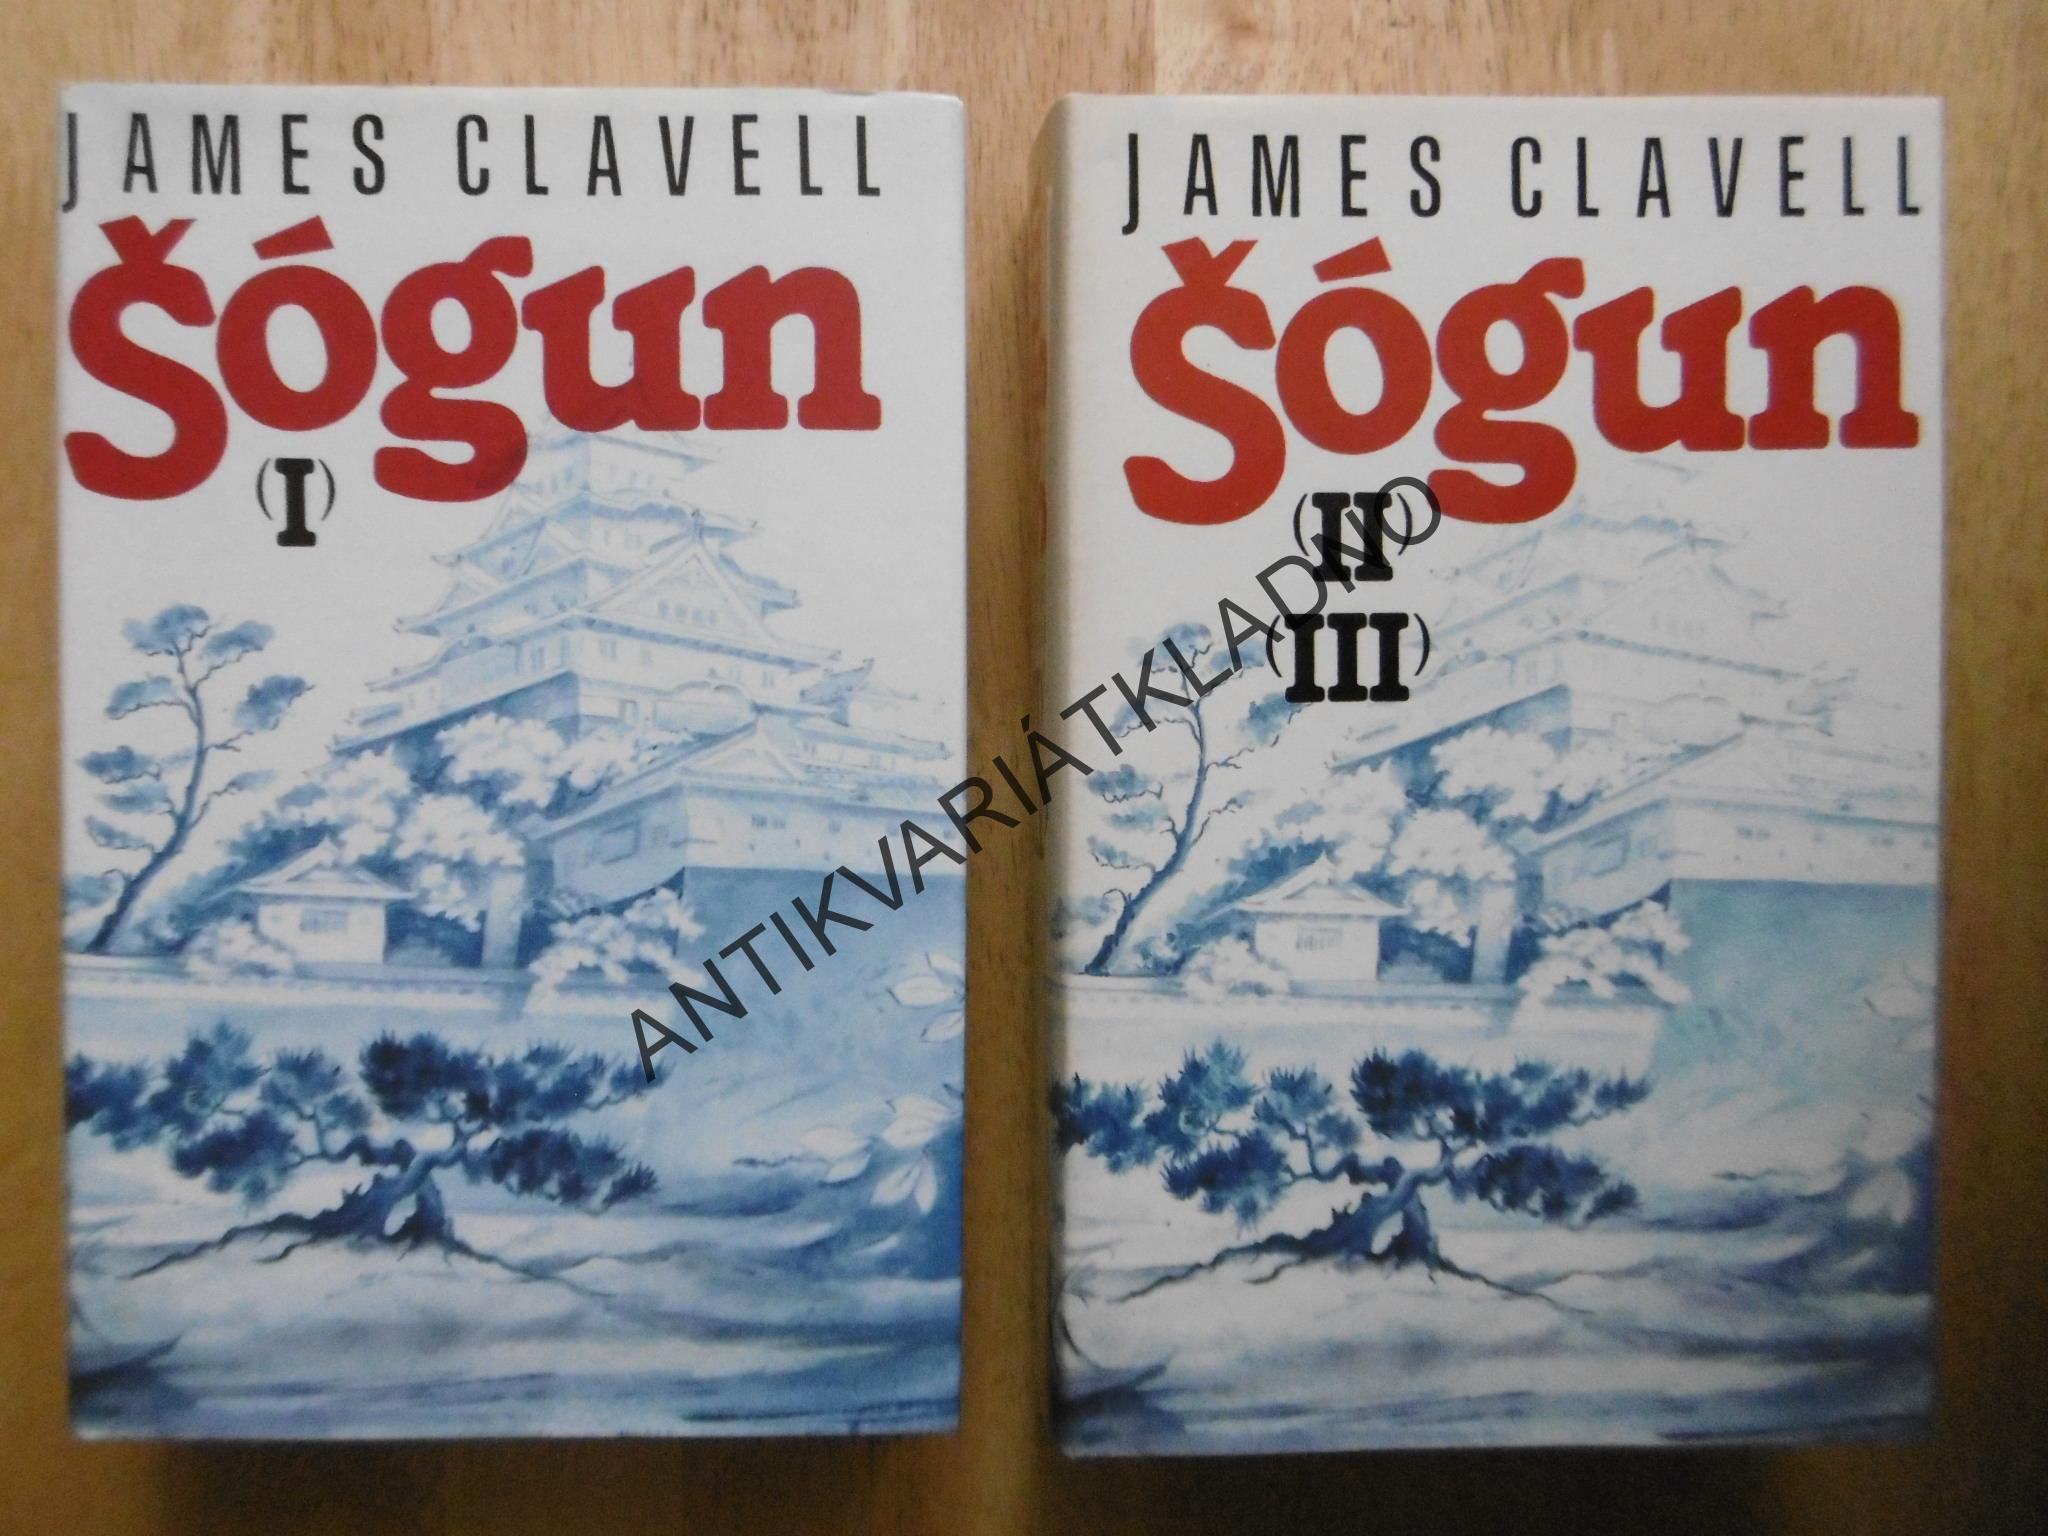 ŠÓGUN, 1-3, JAMES CLAVELL, JAPONSKO, HISTORIE, **an